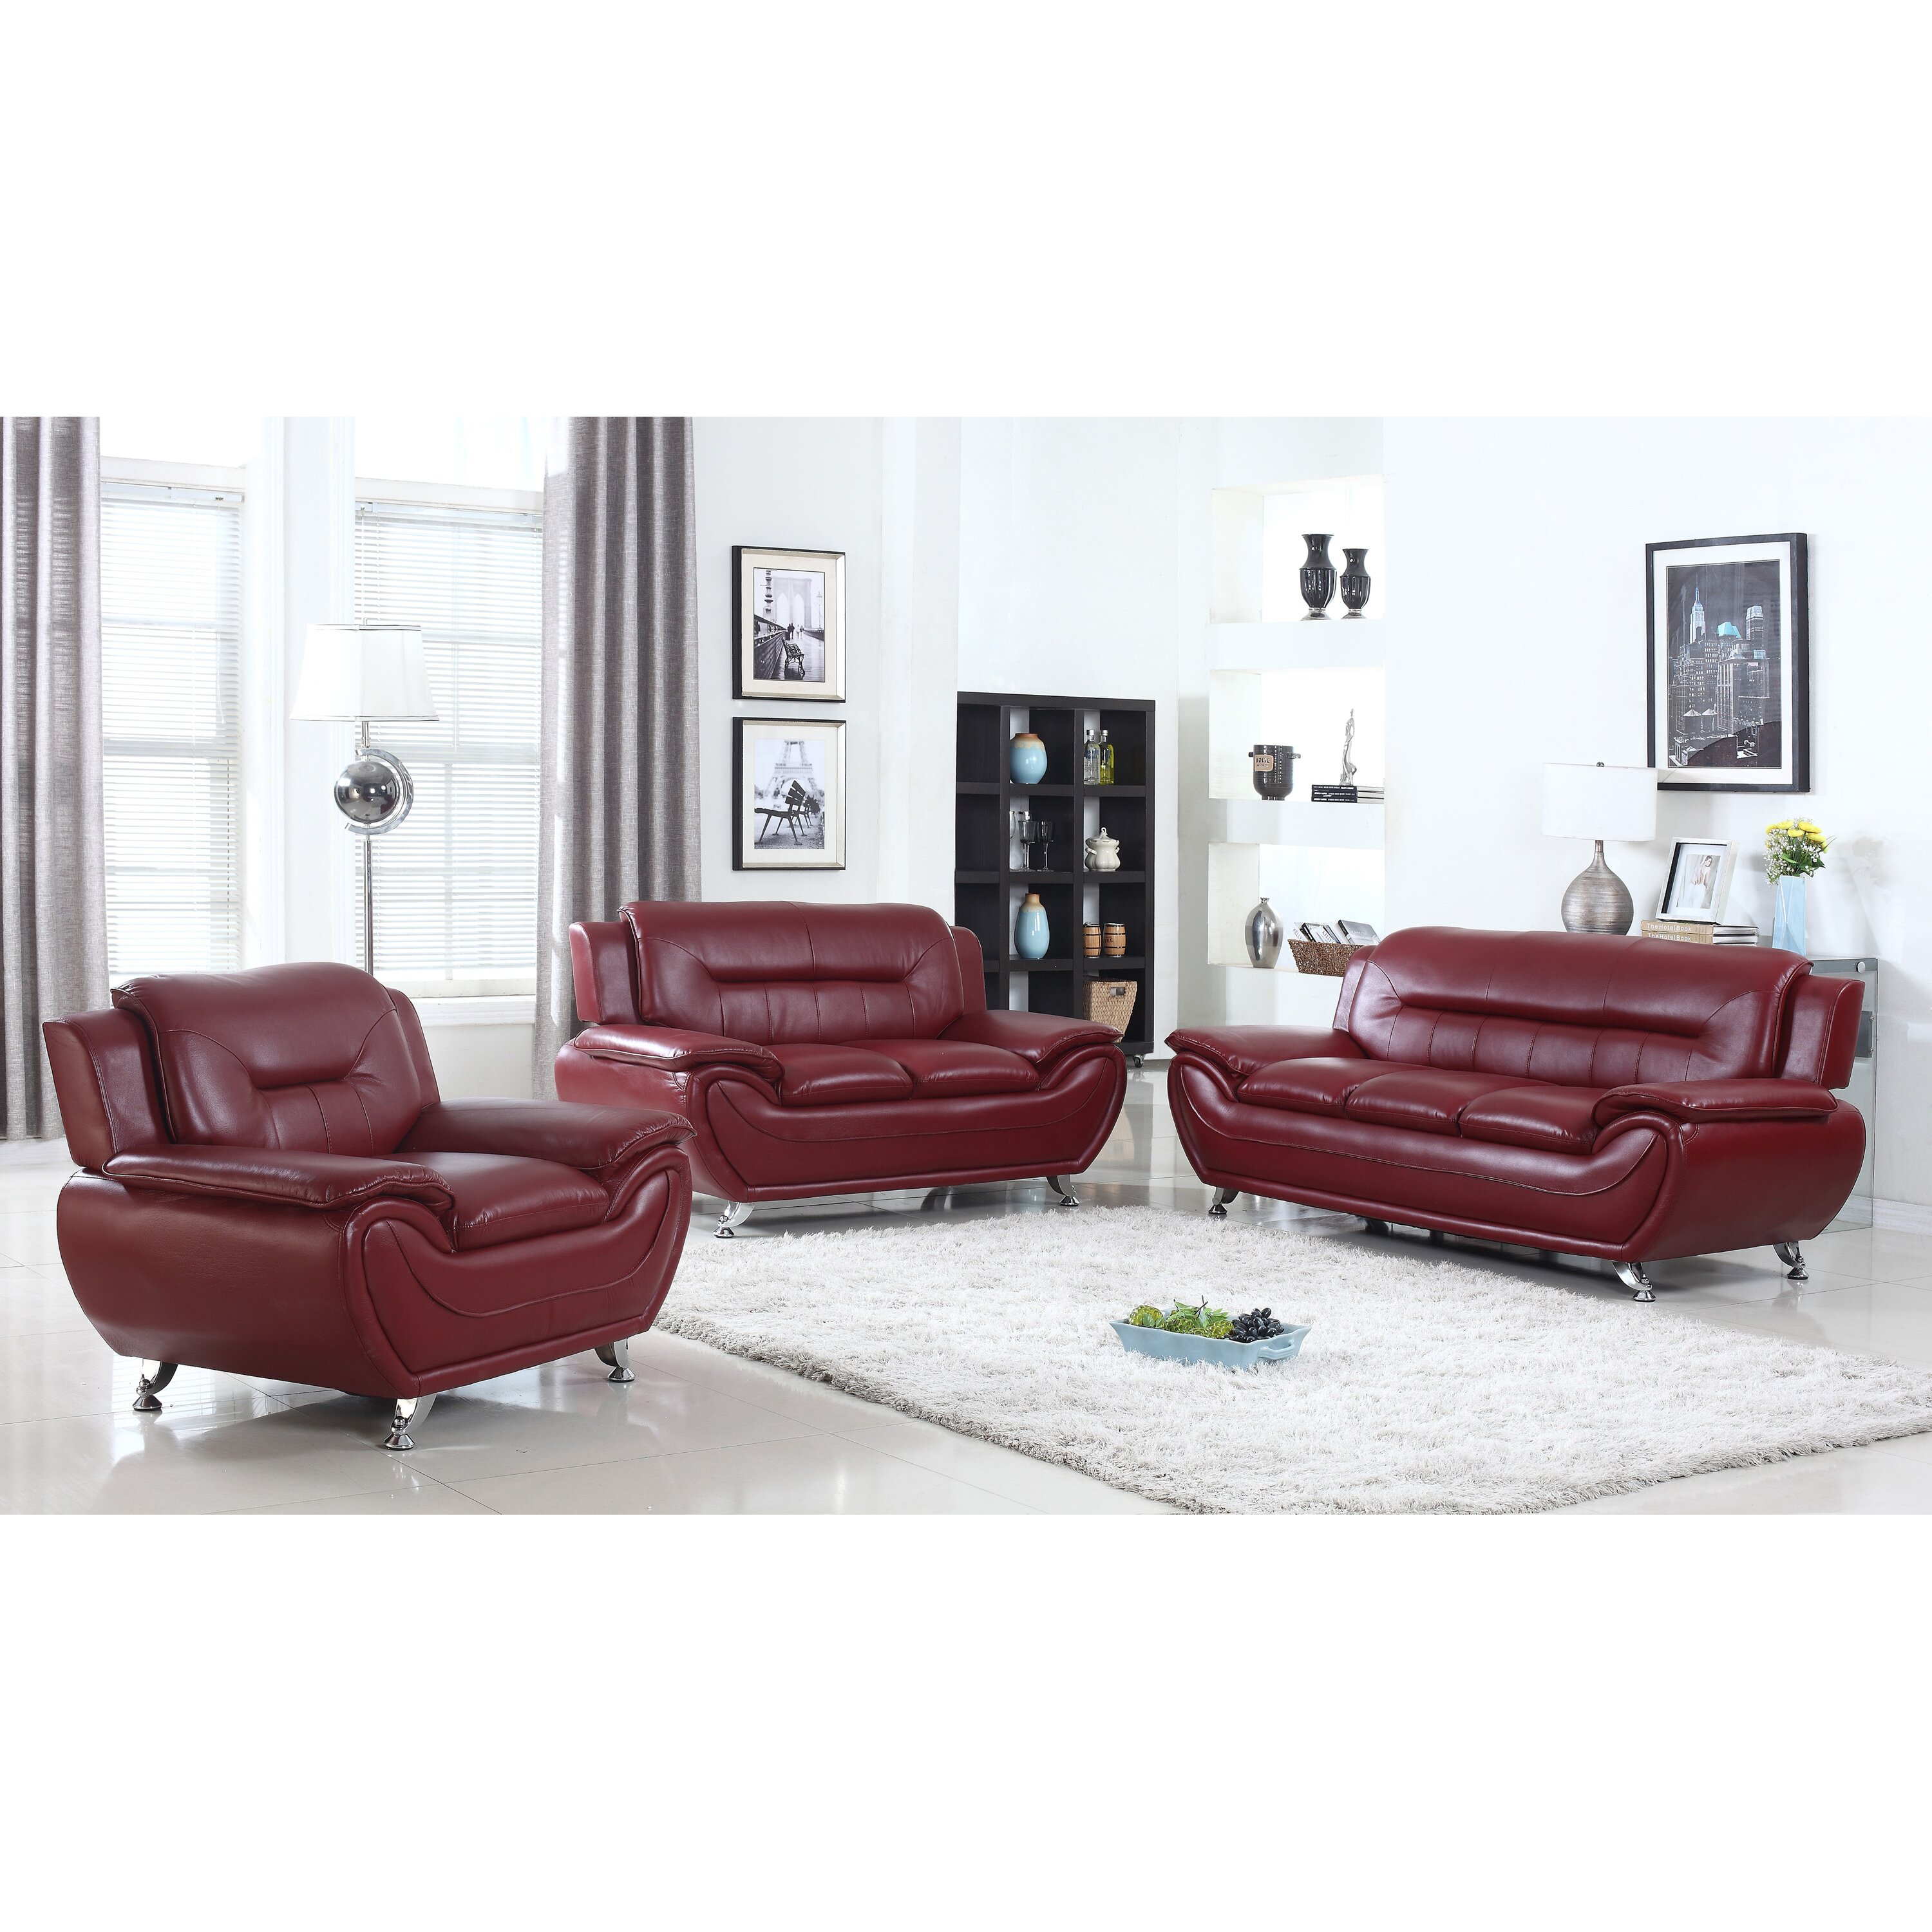 Living Room Furniture Pieces Living In Style Sophie 3 Pieces Sofa Set Reviews Wayfair